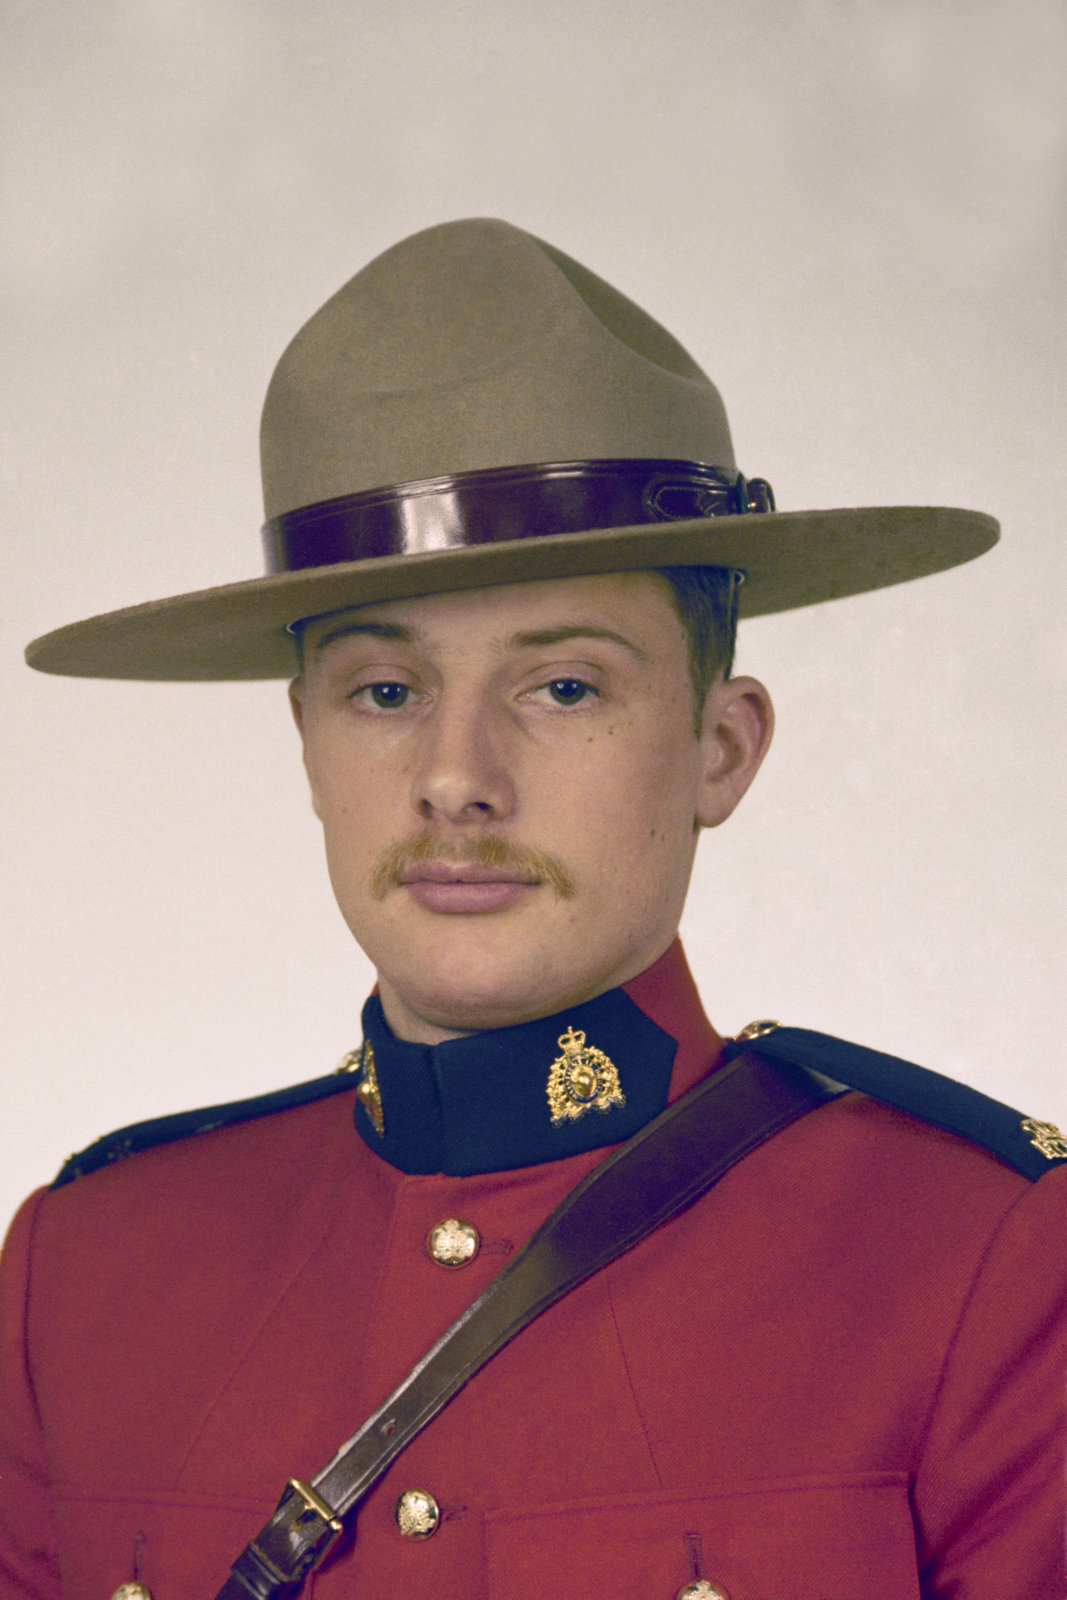 Constable Christopher Colin Riglar – © Her Majesty the Queen in Right of Canada as represented by the Royal Canadian Mounted Police